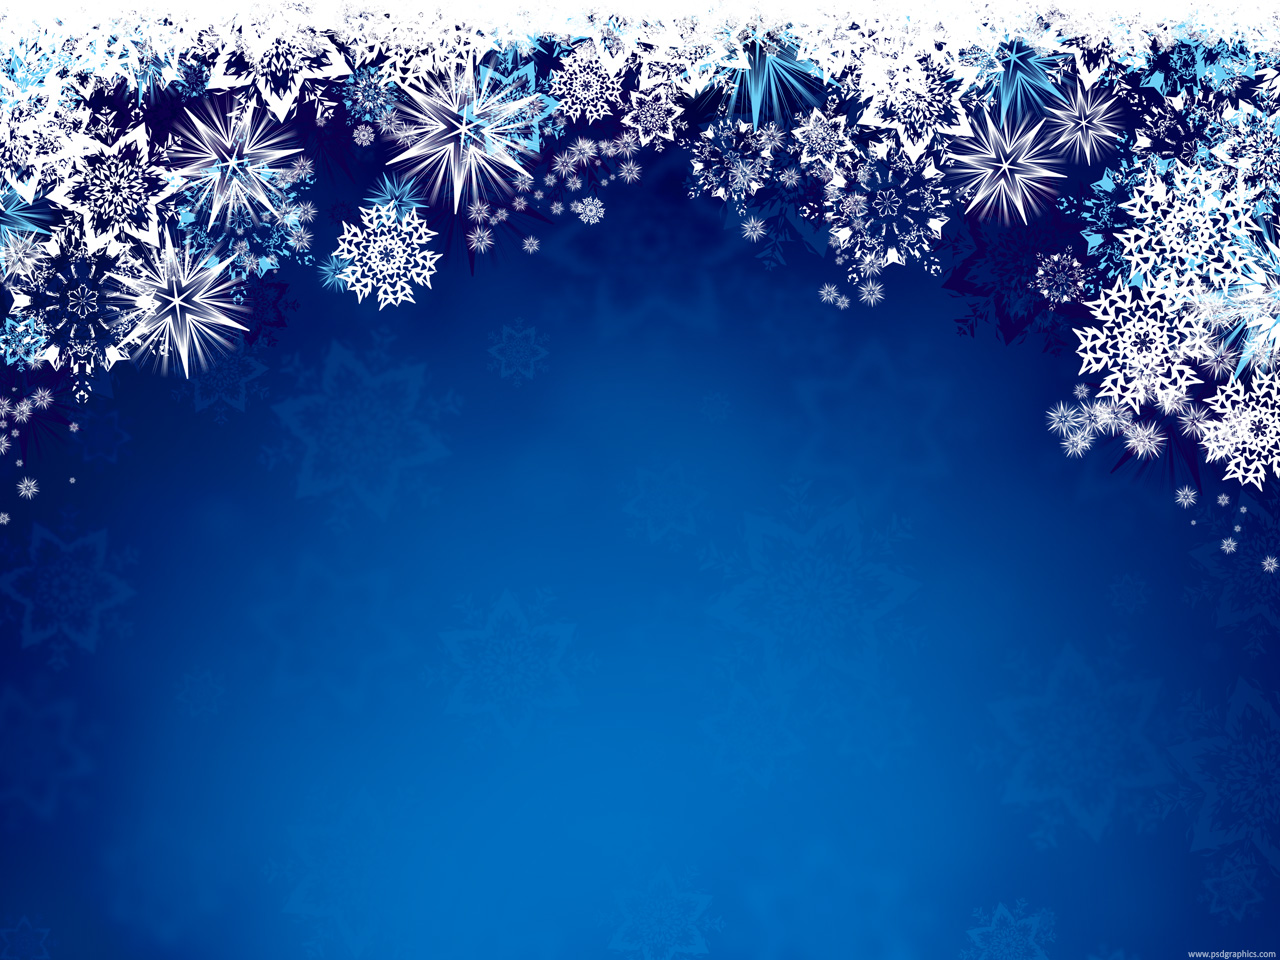 Winter Snow Background Clip Art-Winter Snow Background Clip Art-18